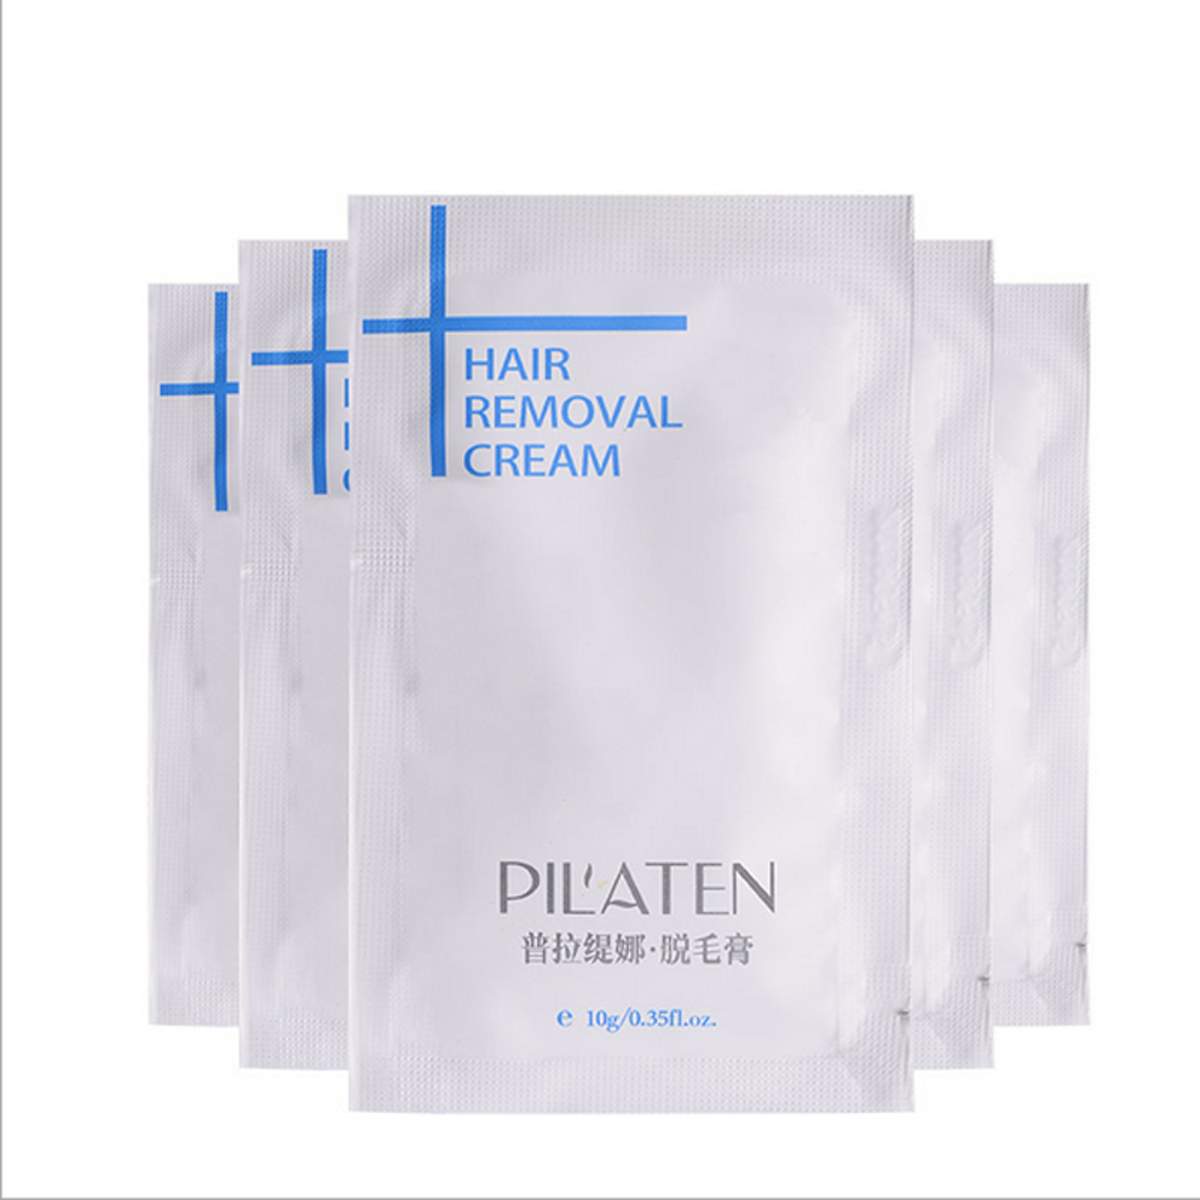 10Pcs PILATEN Men&Women Natural Powerful Depilatory Hair Removal Cream Hair Growth Inhibitor